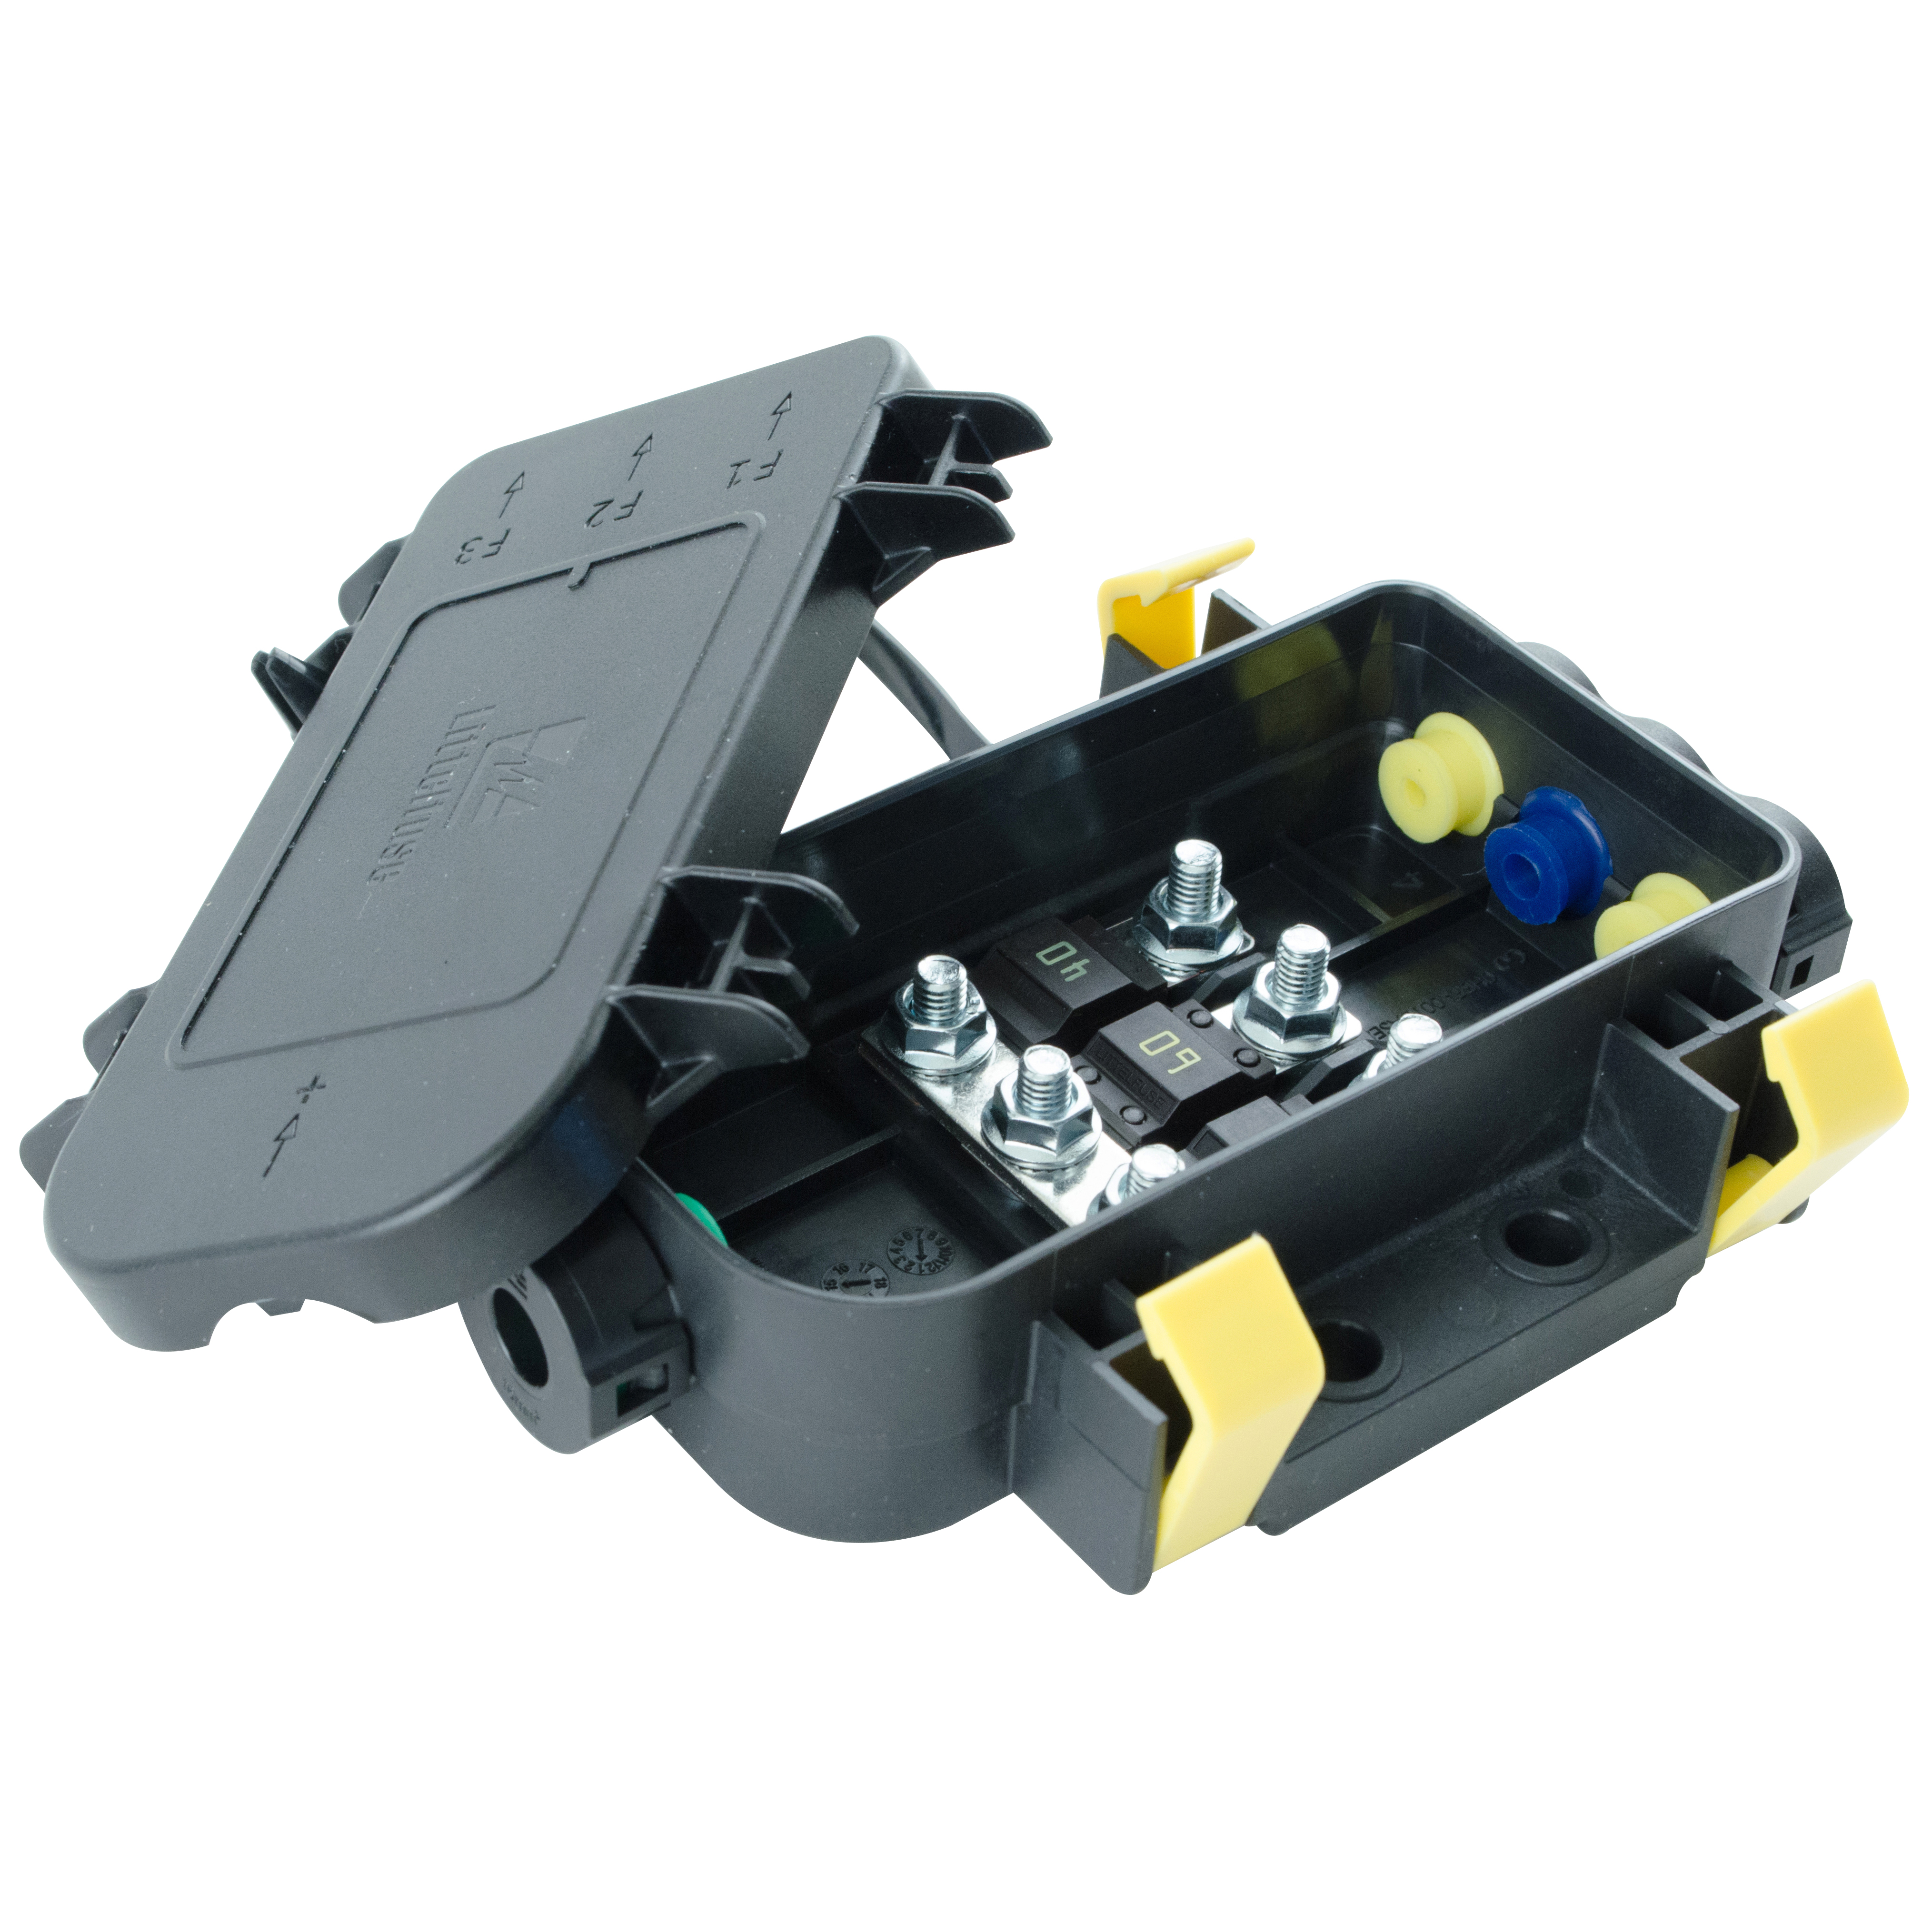 car fuse box modular wiring diagram g9 car fuse box diagram car fuse box modular [ 4058 x 4058 Pixel ]